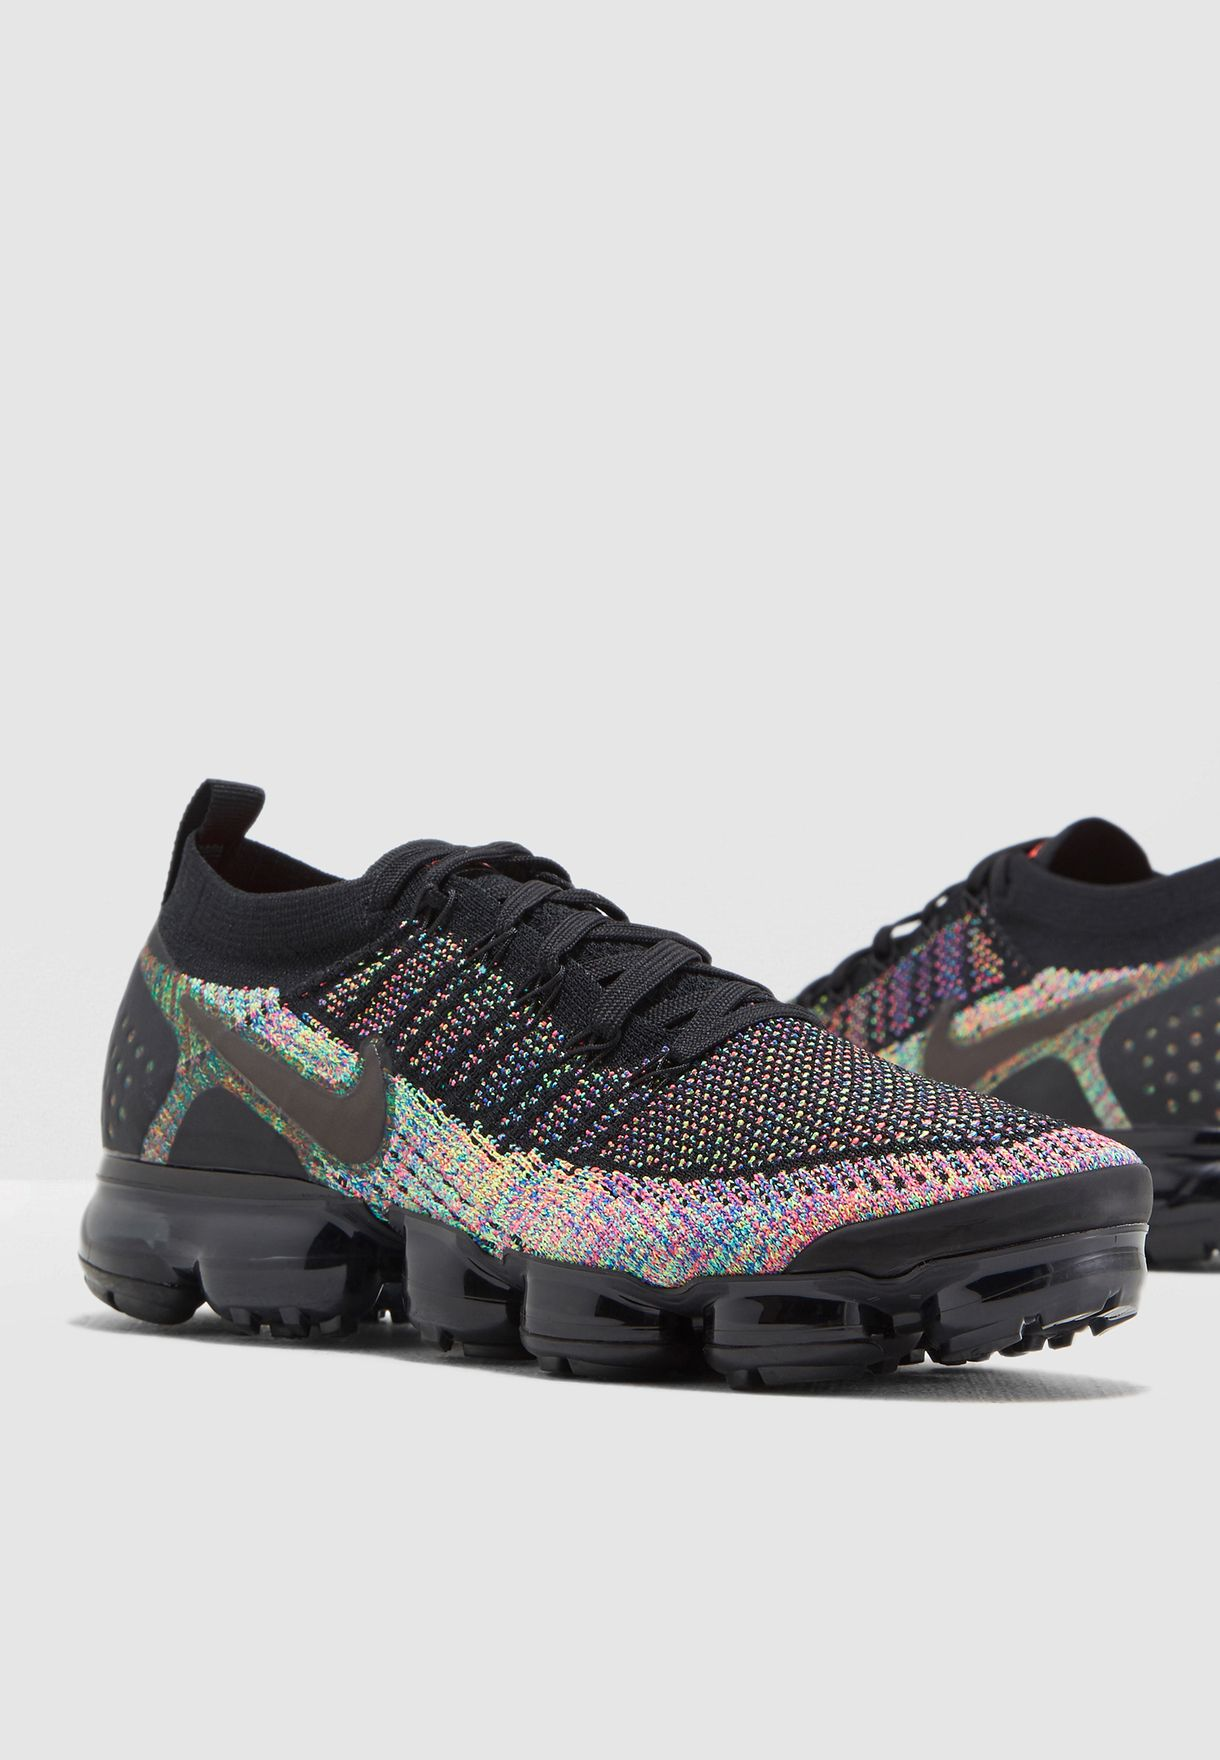 c6a96b8c0a12e Shop Nike multicolor Air Vapormax Flyknit 2 942842-017 for Men in ...